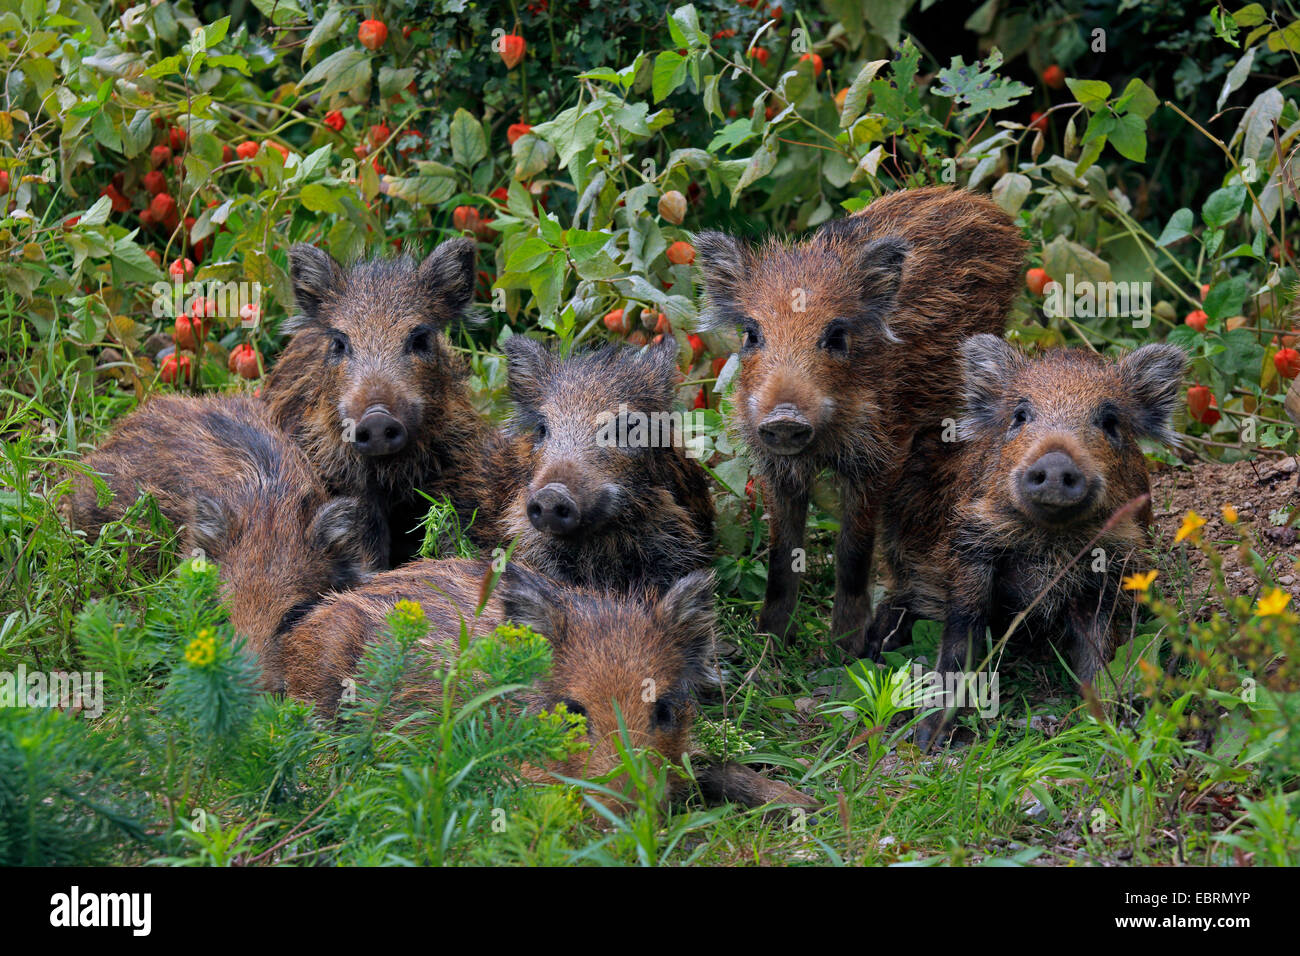 wild boar, pig, wild boar (Sus scrofa), shotes in the garden, Germany, Baden-Wuerttemberg Stock Photo